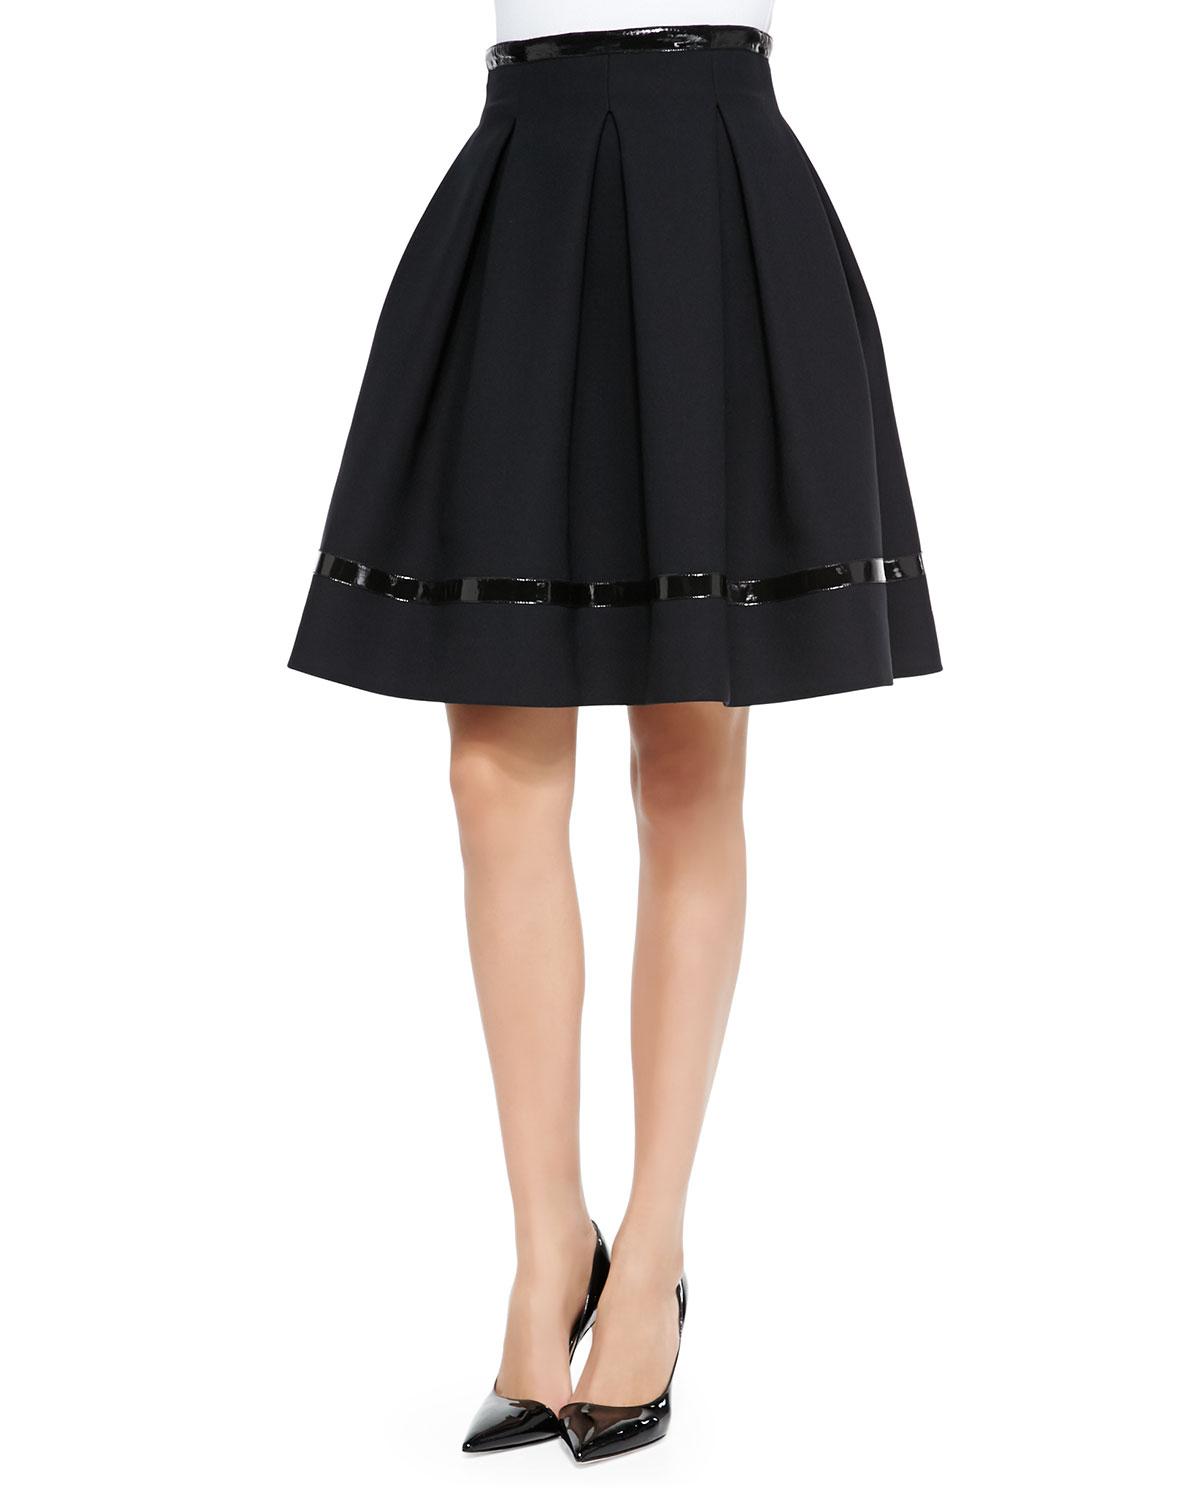 tamara mellon patent leather trimmed flared skirt in black